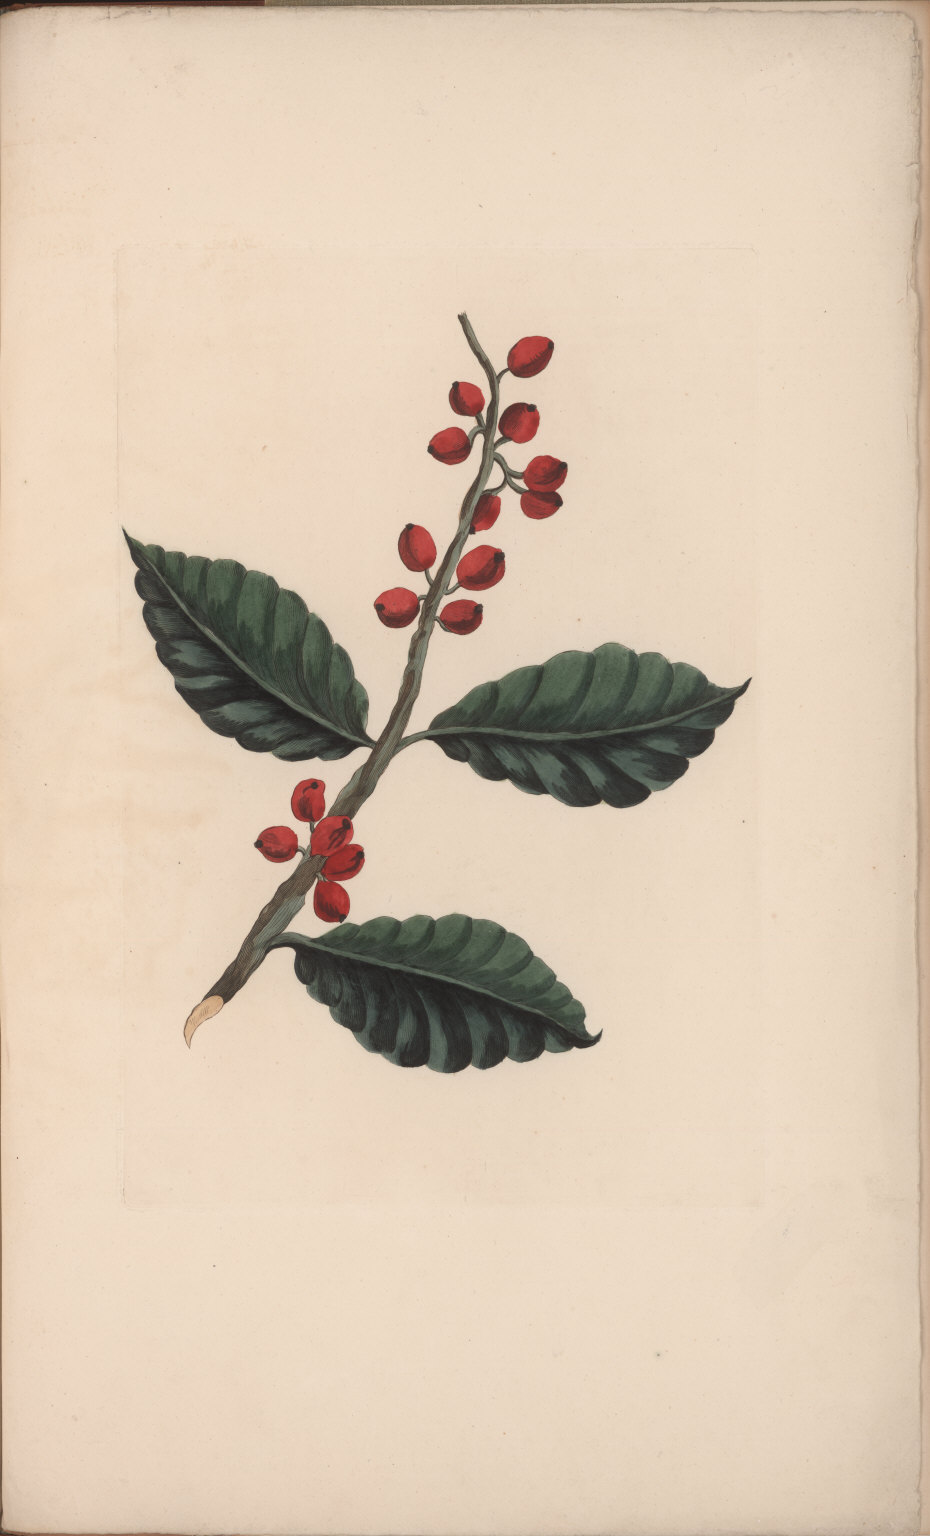 No. XII. Coffea occidentalis, or, Coffee tree. This useful Tree bears delicate White Flowers particularly redolent.